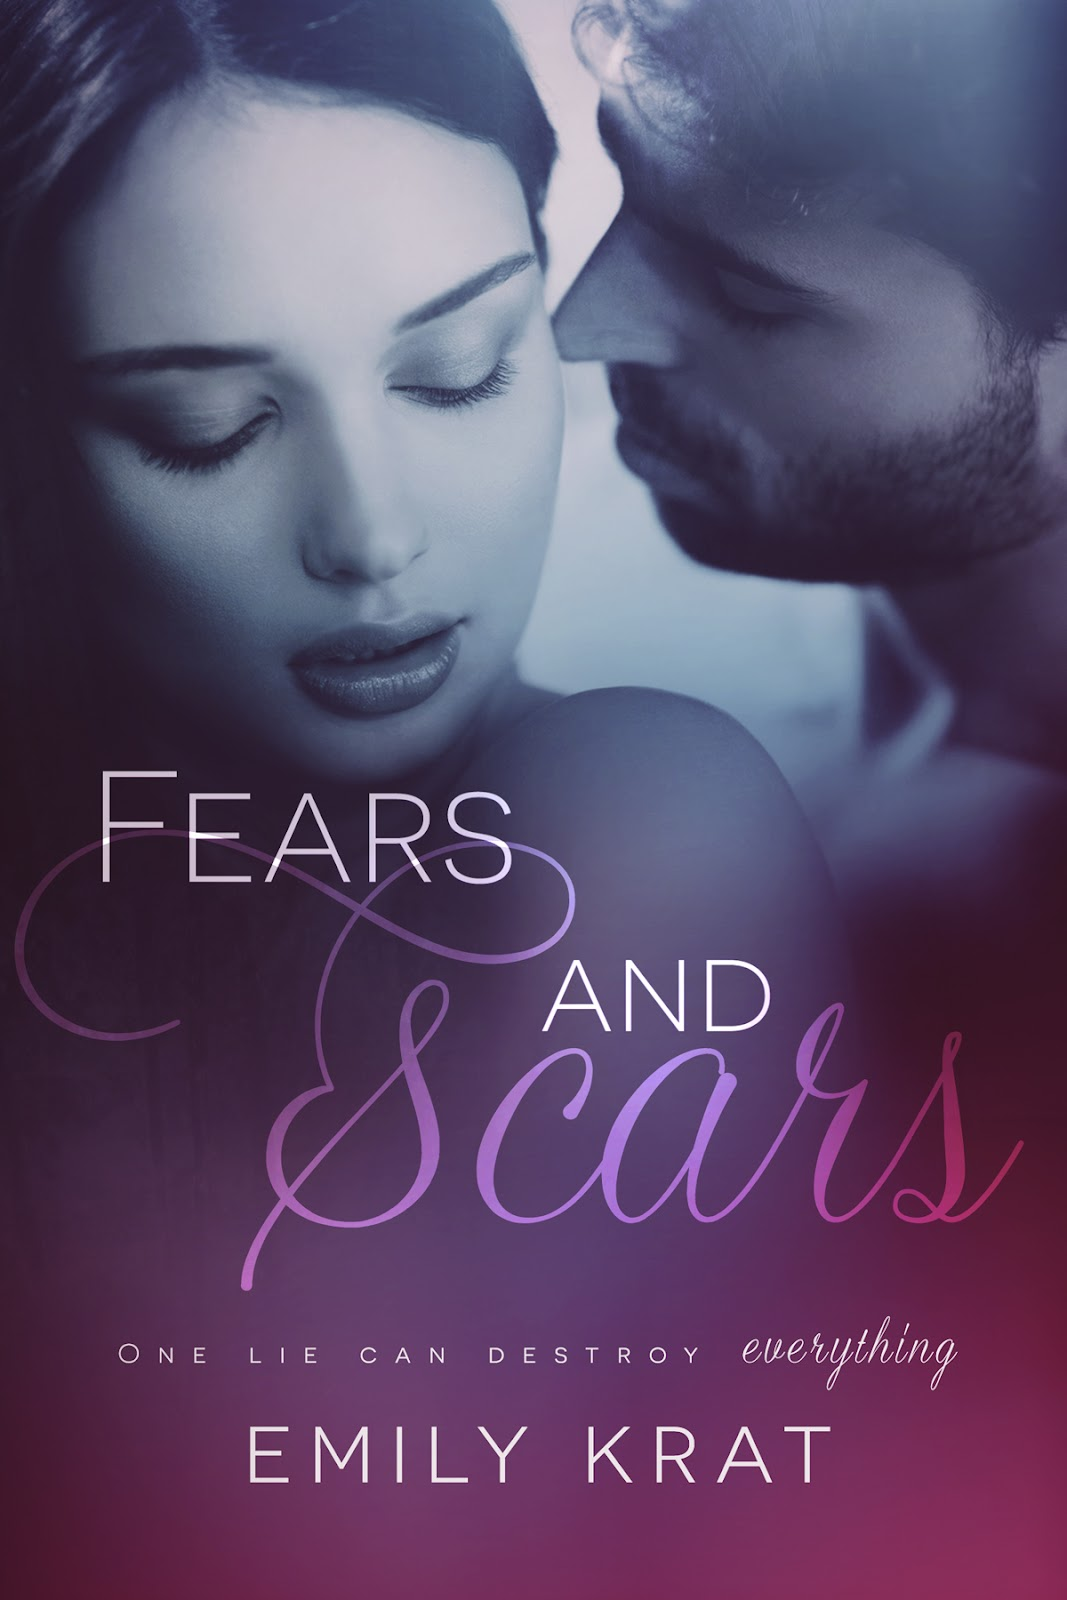 FEARS AND SCARS BY EMILY KRAT BARNES AND NOBLE EBOOK COVER.jpg